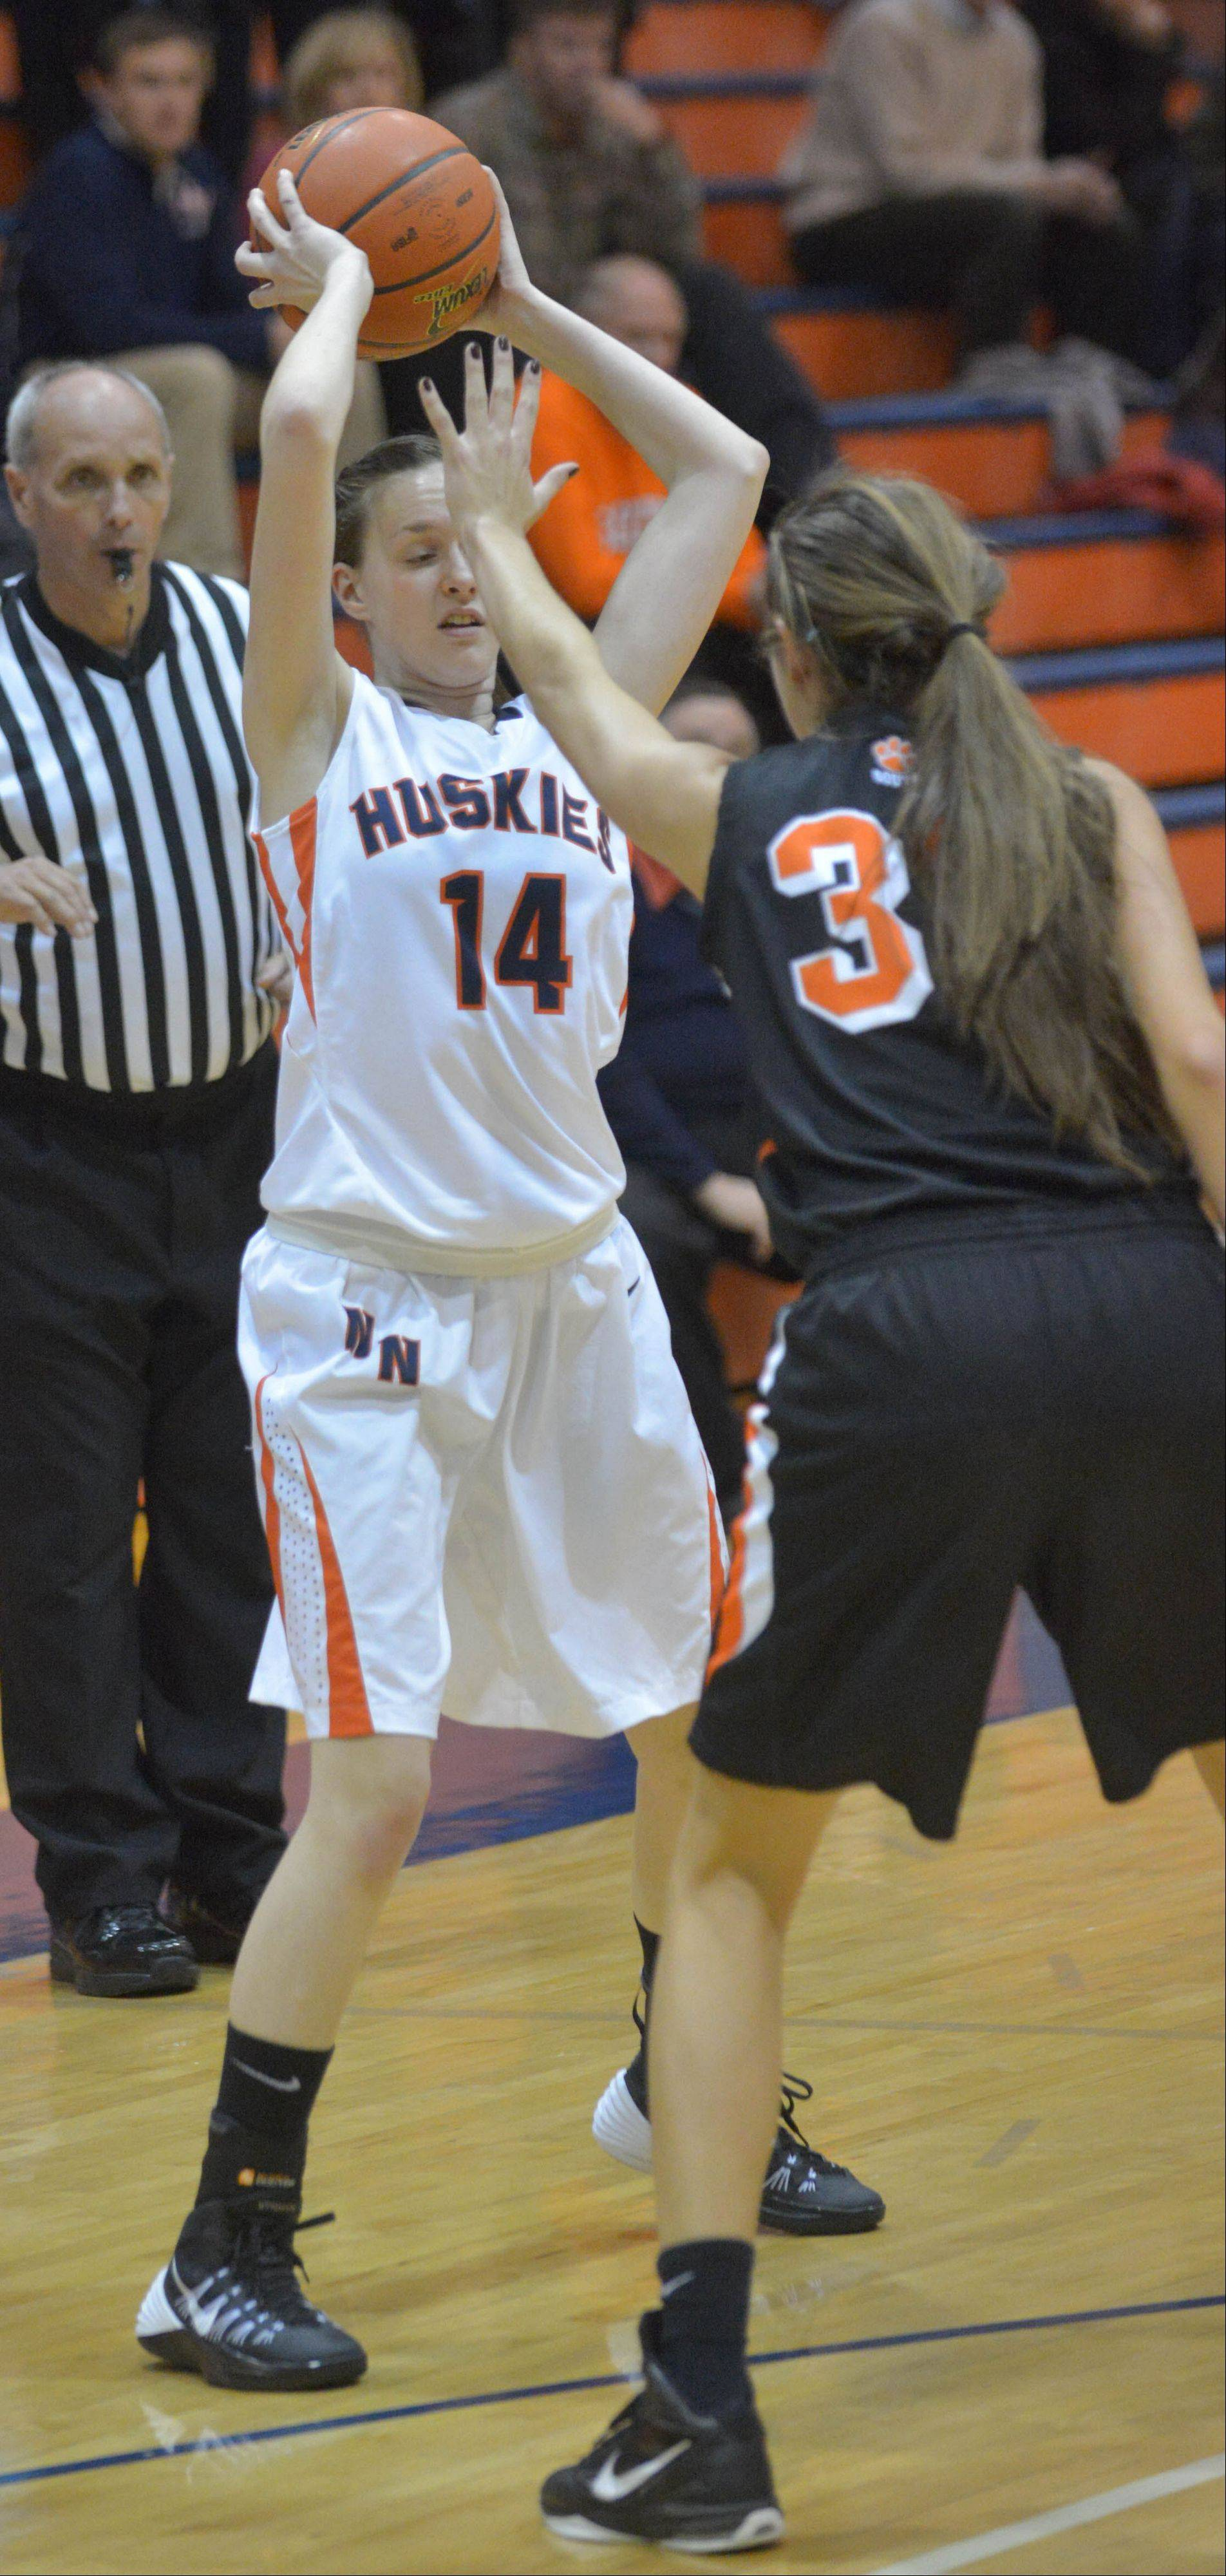 Sophia Fumagalli of Naperville North looks to pass during the Wheaton Warrenville South at Naperville North girls basketball game Tuesday.